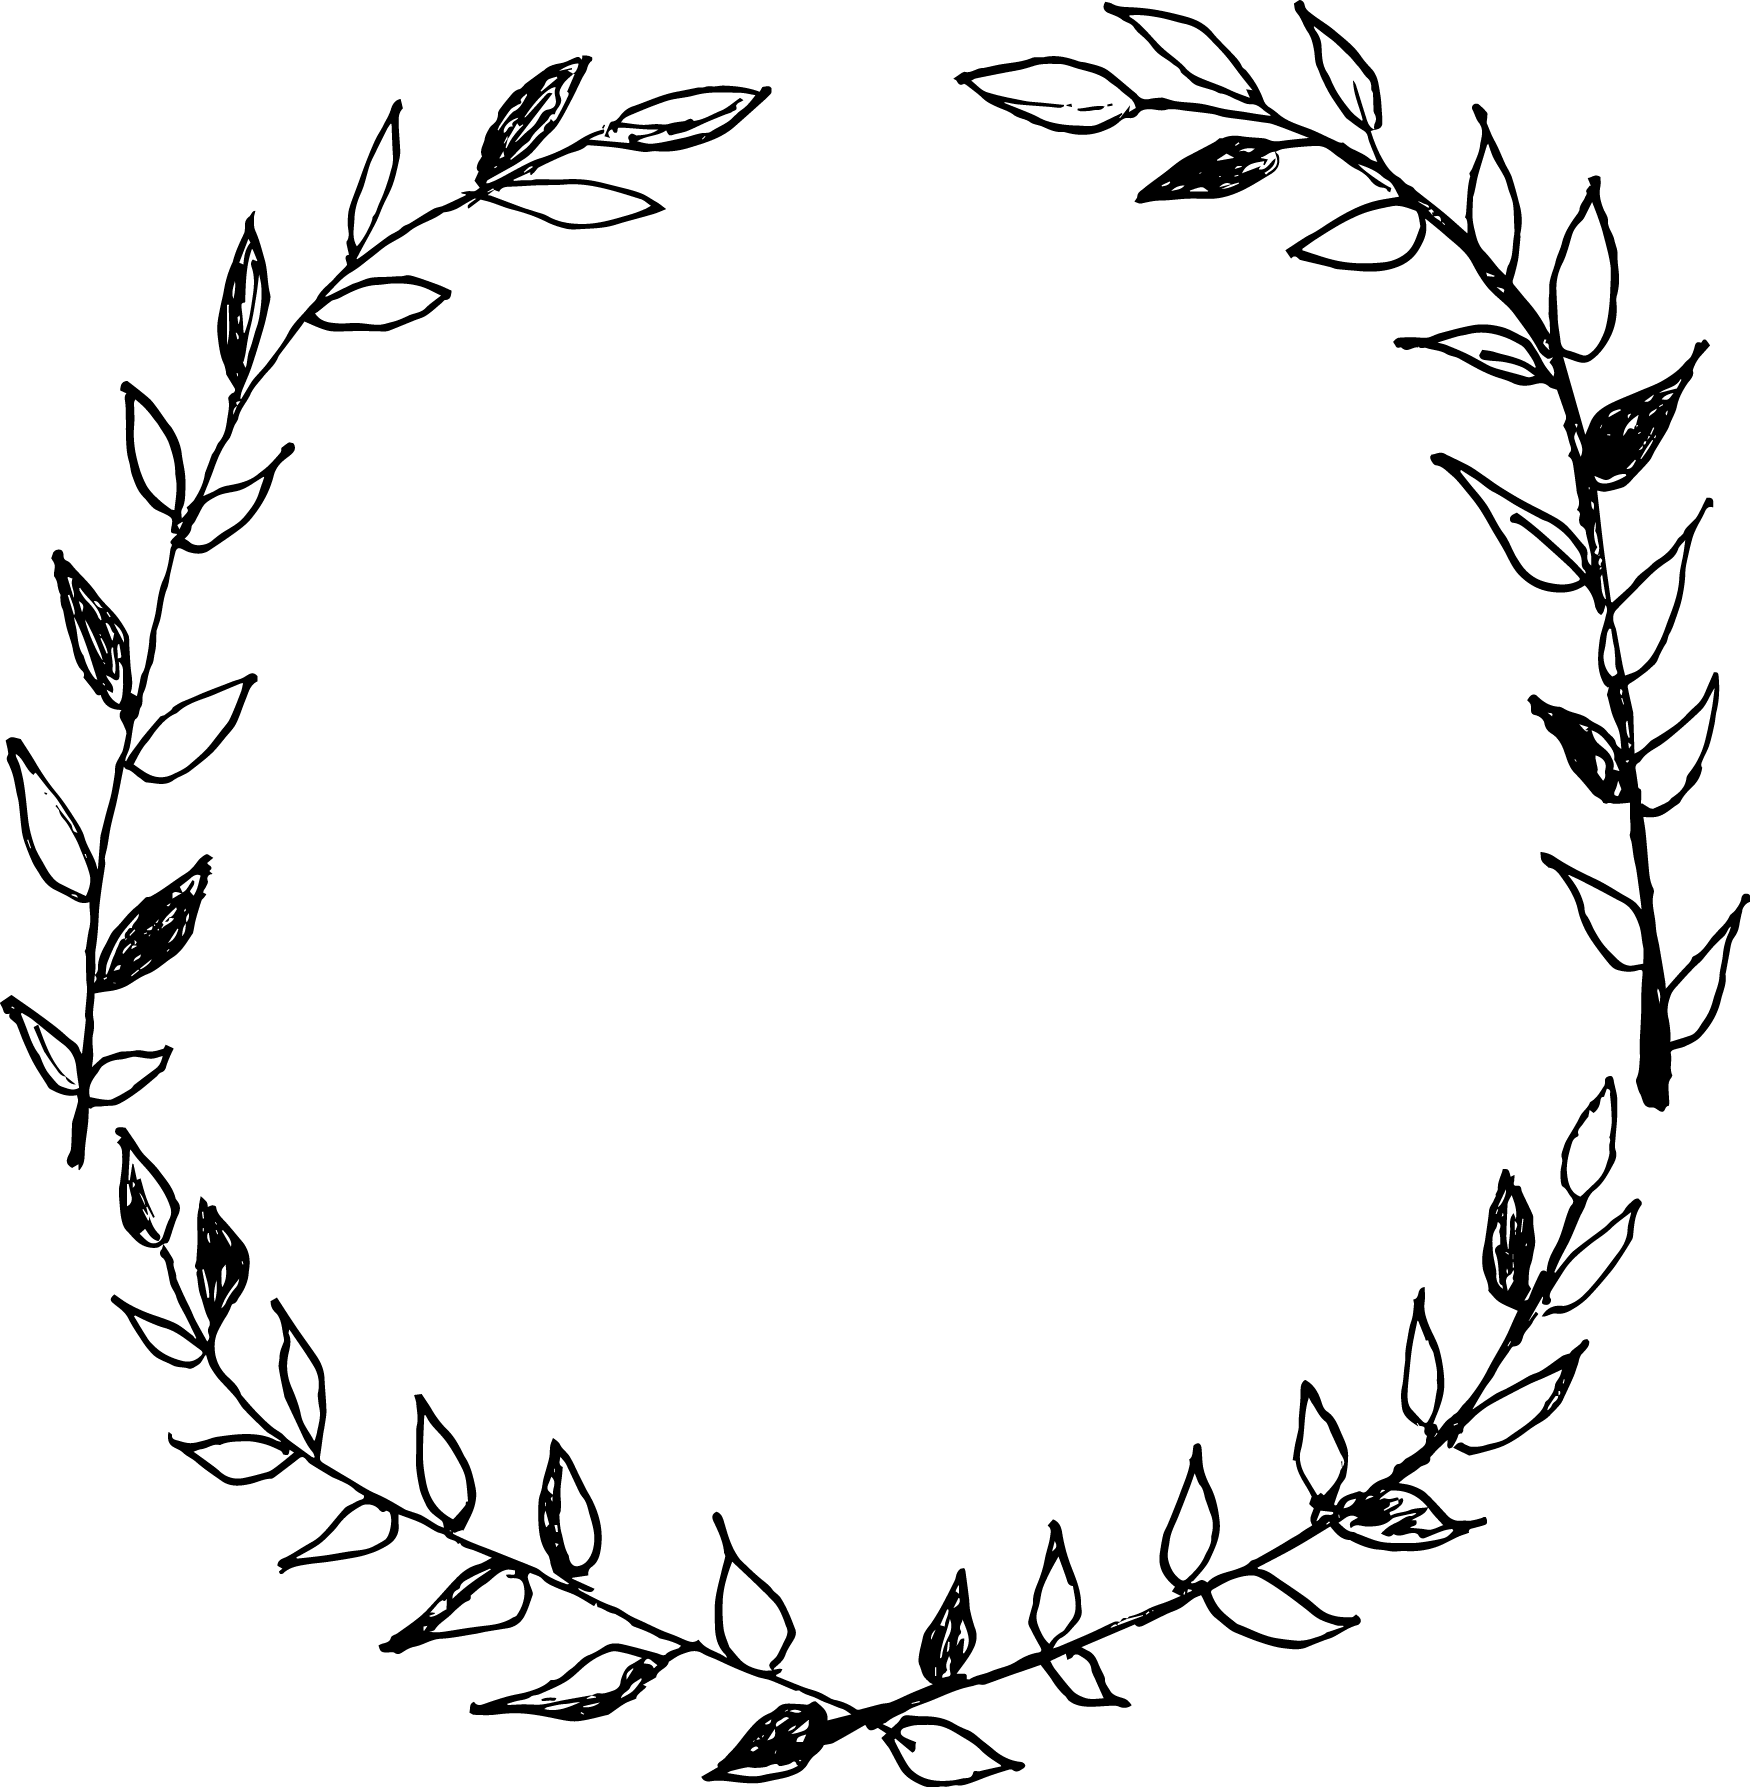 Hand drawn crown clipart svg royalty free library hand drawn oval wreath frame - Google Search | Papier | Pinterest ... svg royalty free library